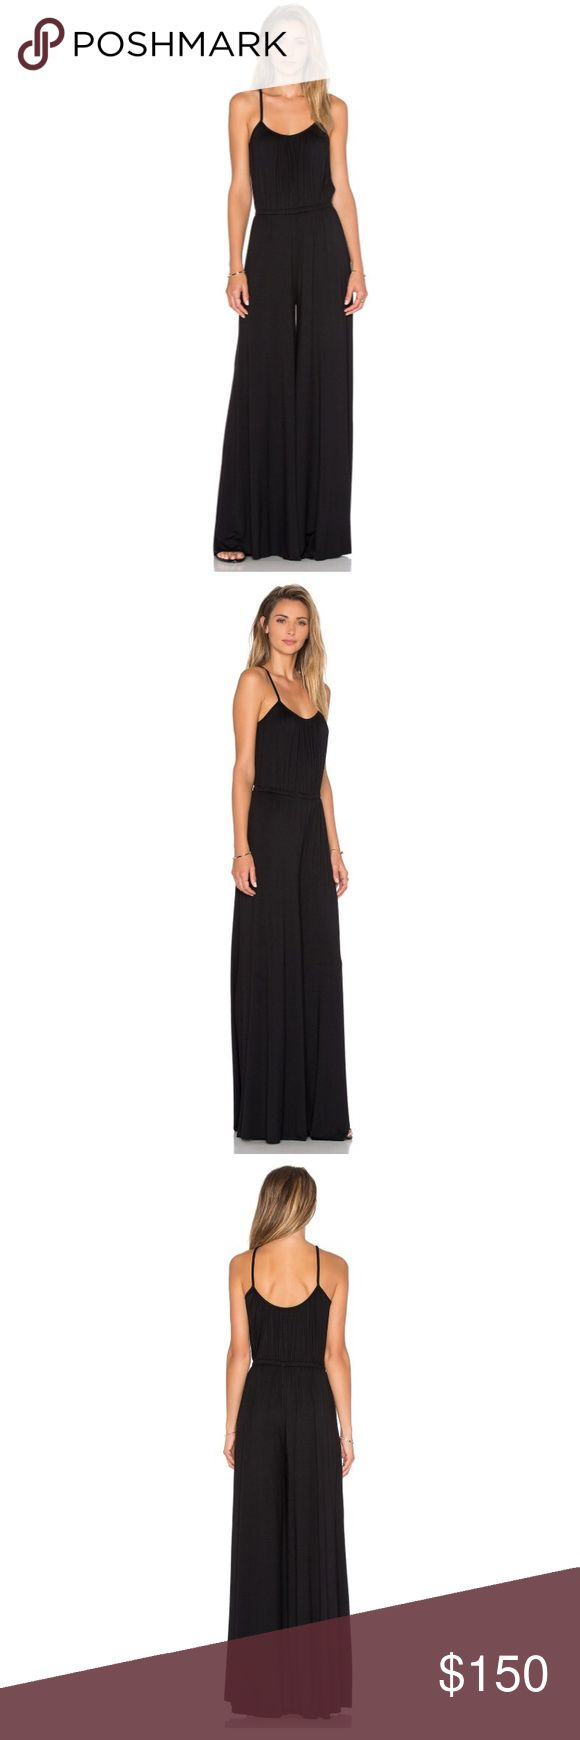 Rachel Pally Harlan Jumpsuit *NWT* Brand new with tags. Beautiful black jumpsuit by Rachel Pally. Stretchy and flattering. So comfortable! Has great length with raw hems for easy alteration if necessary! Rachel Pally Pants Jumpsuits & Rompers